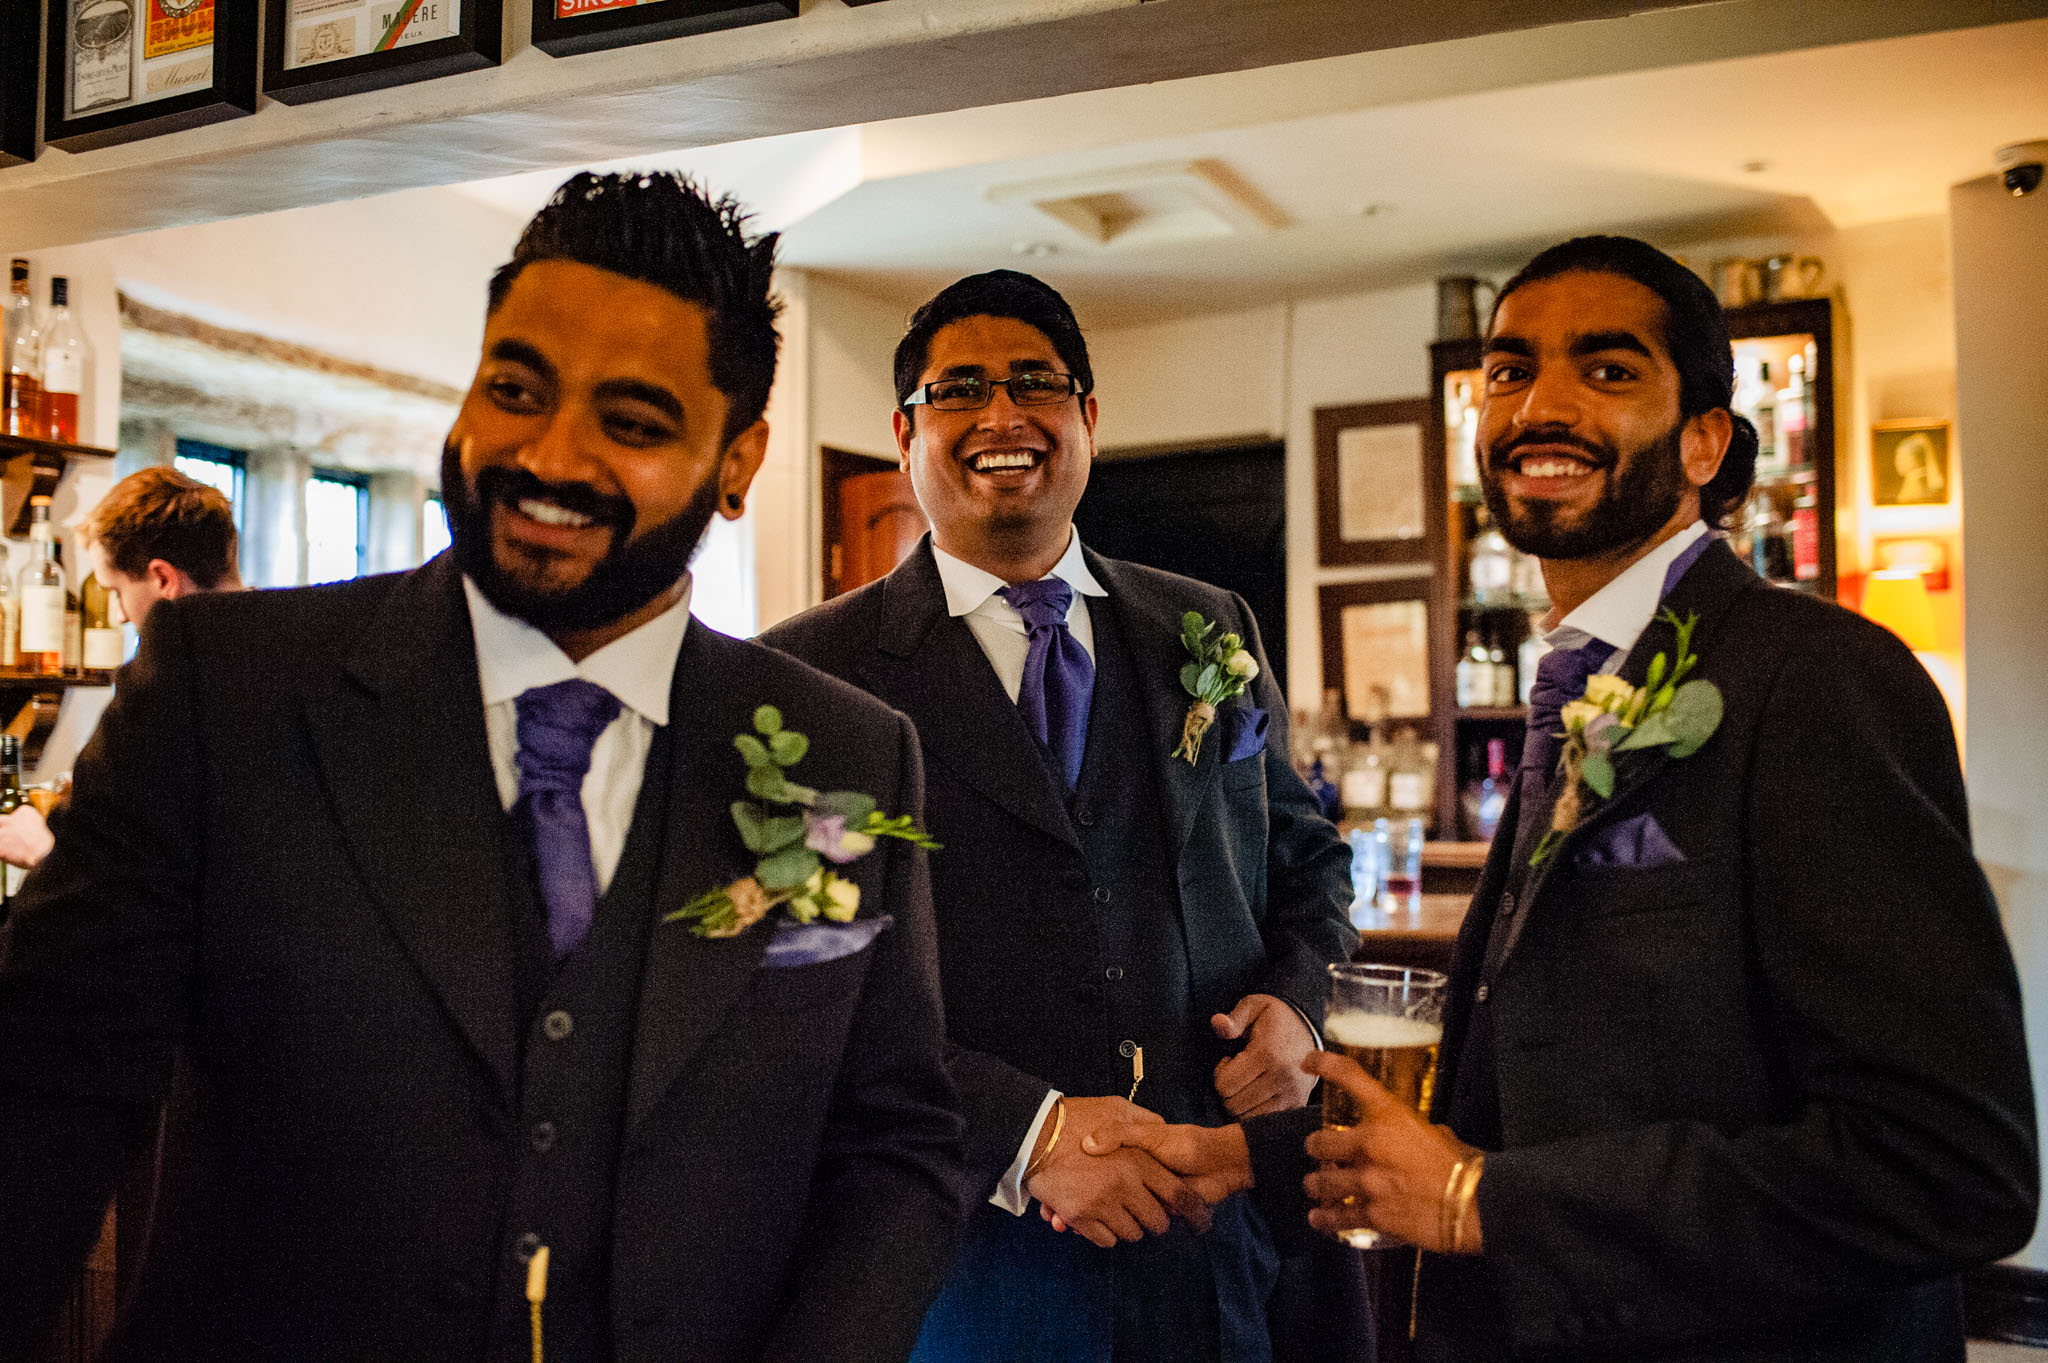 The groom shakes hands with his brothers